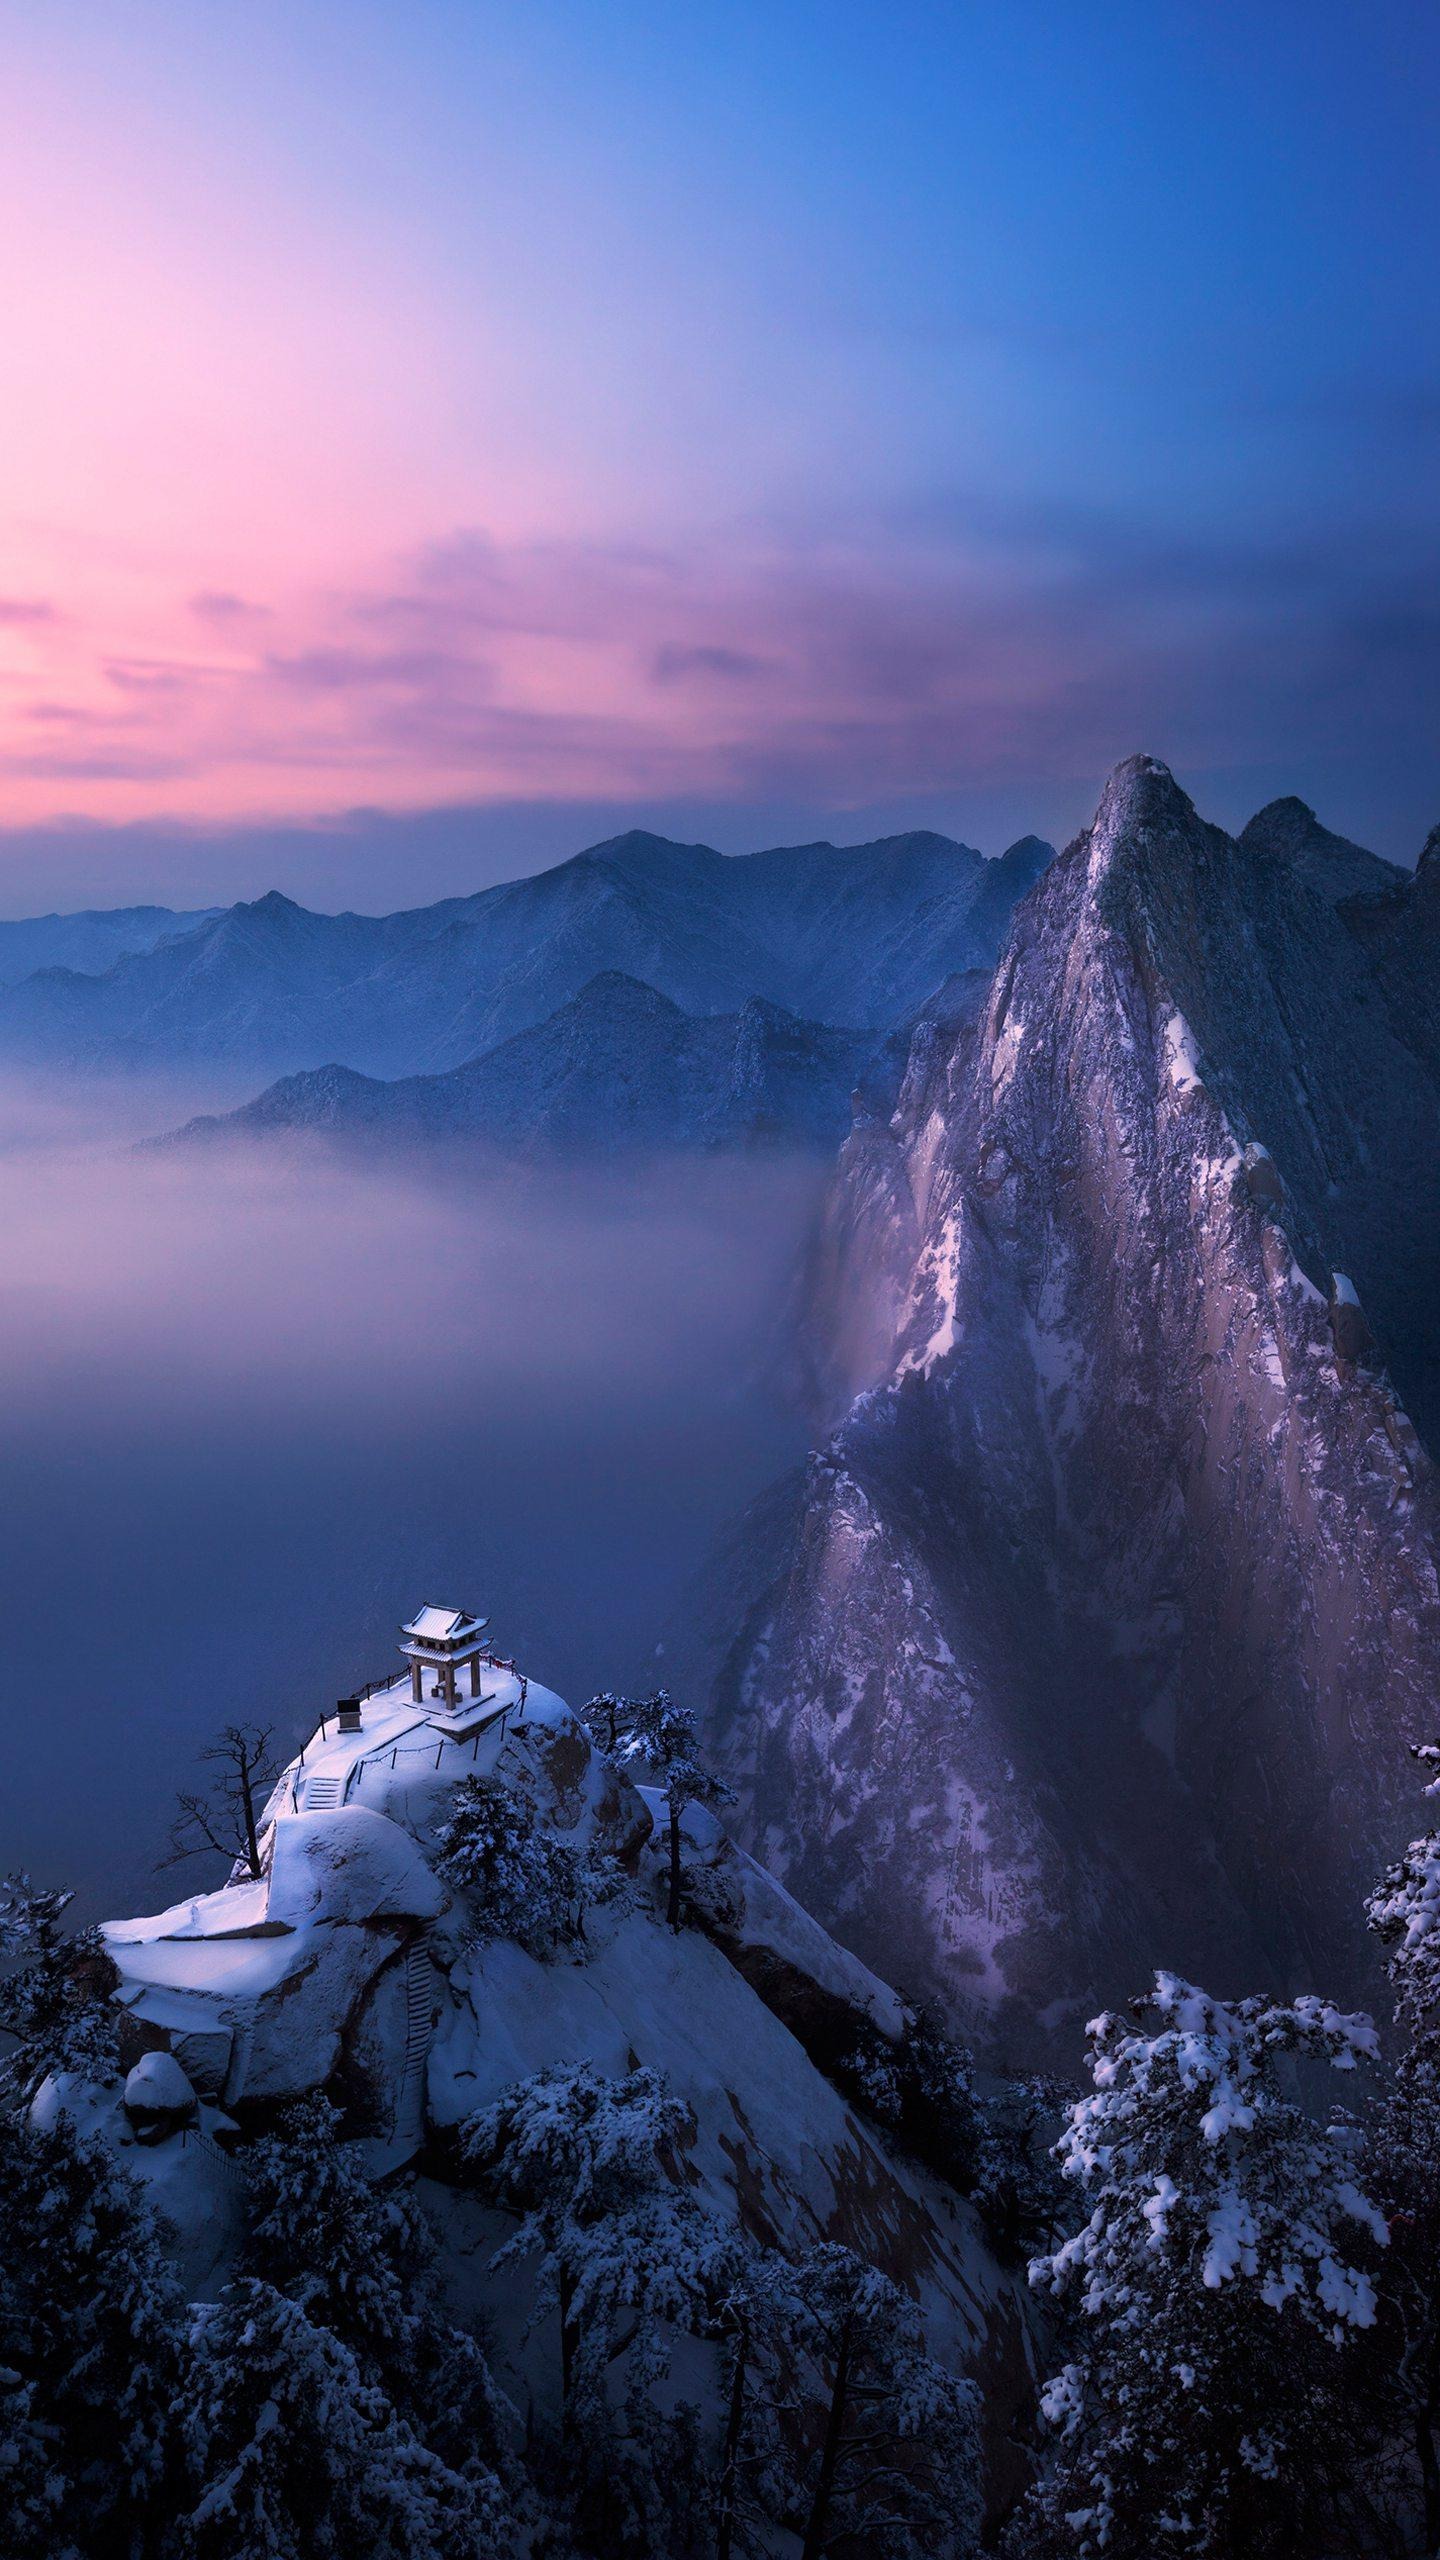 Huashan's unsolved mystery. Huashan is the sacred mountain of the Chinese nation. It also has some unsolved mysteries. Do you understand it?